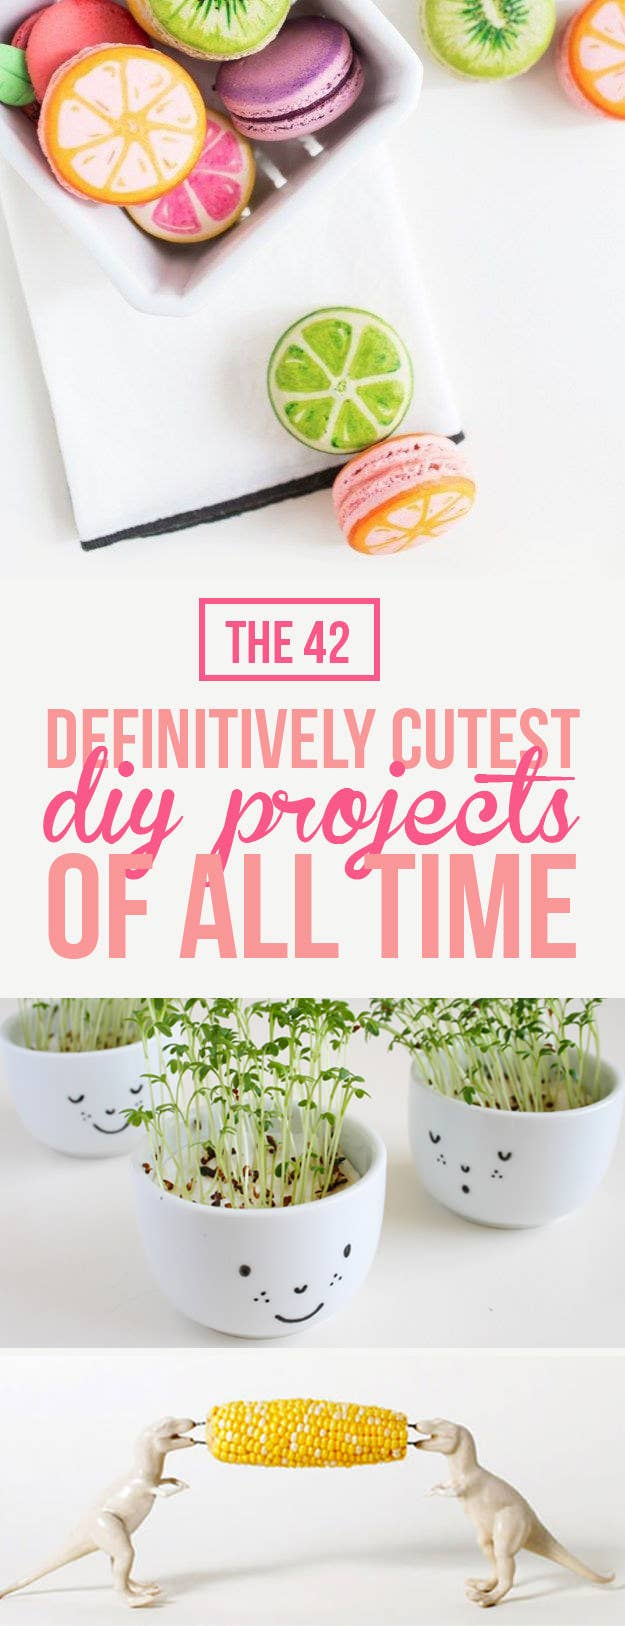 The 42 definitively cutest diy projects of all time share on facebook share solutioingenieria Image collections